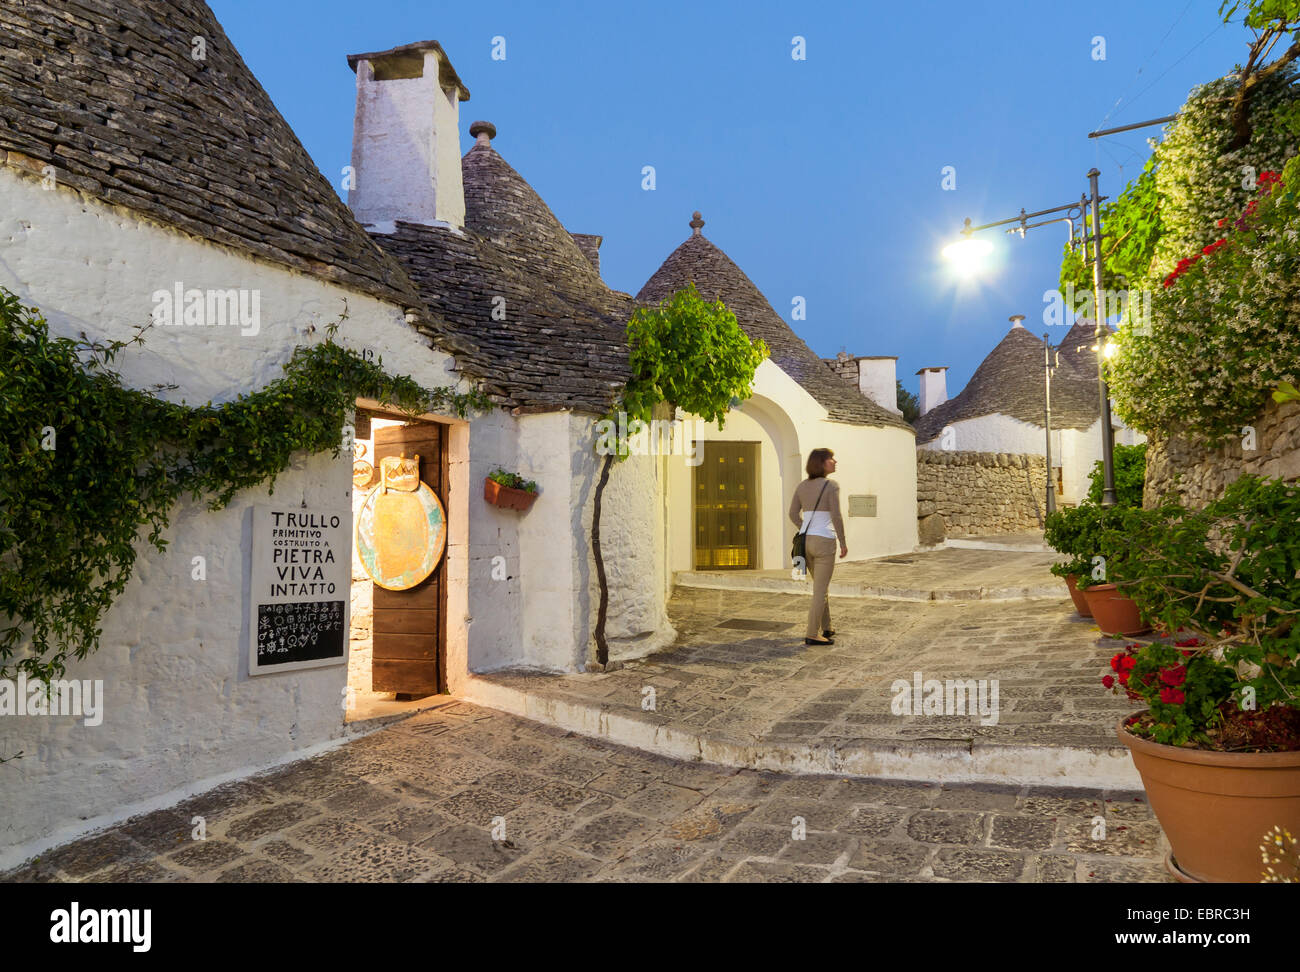 Young Woman walks along Street with Trulli Houses at Night, Alberobello, Puglia, Italy (Model release available Stock Photo